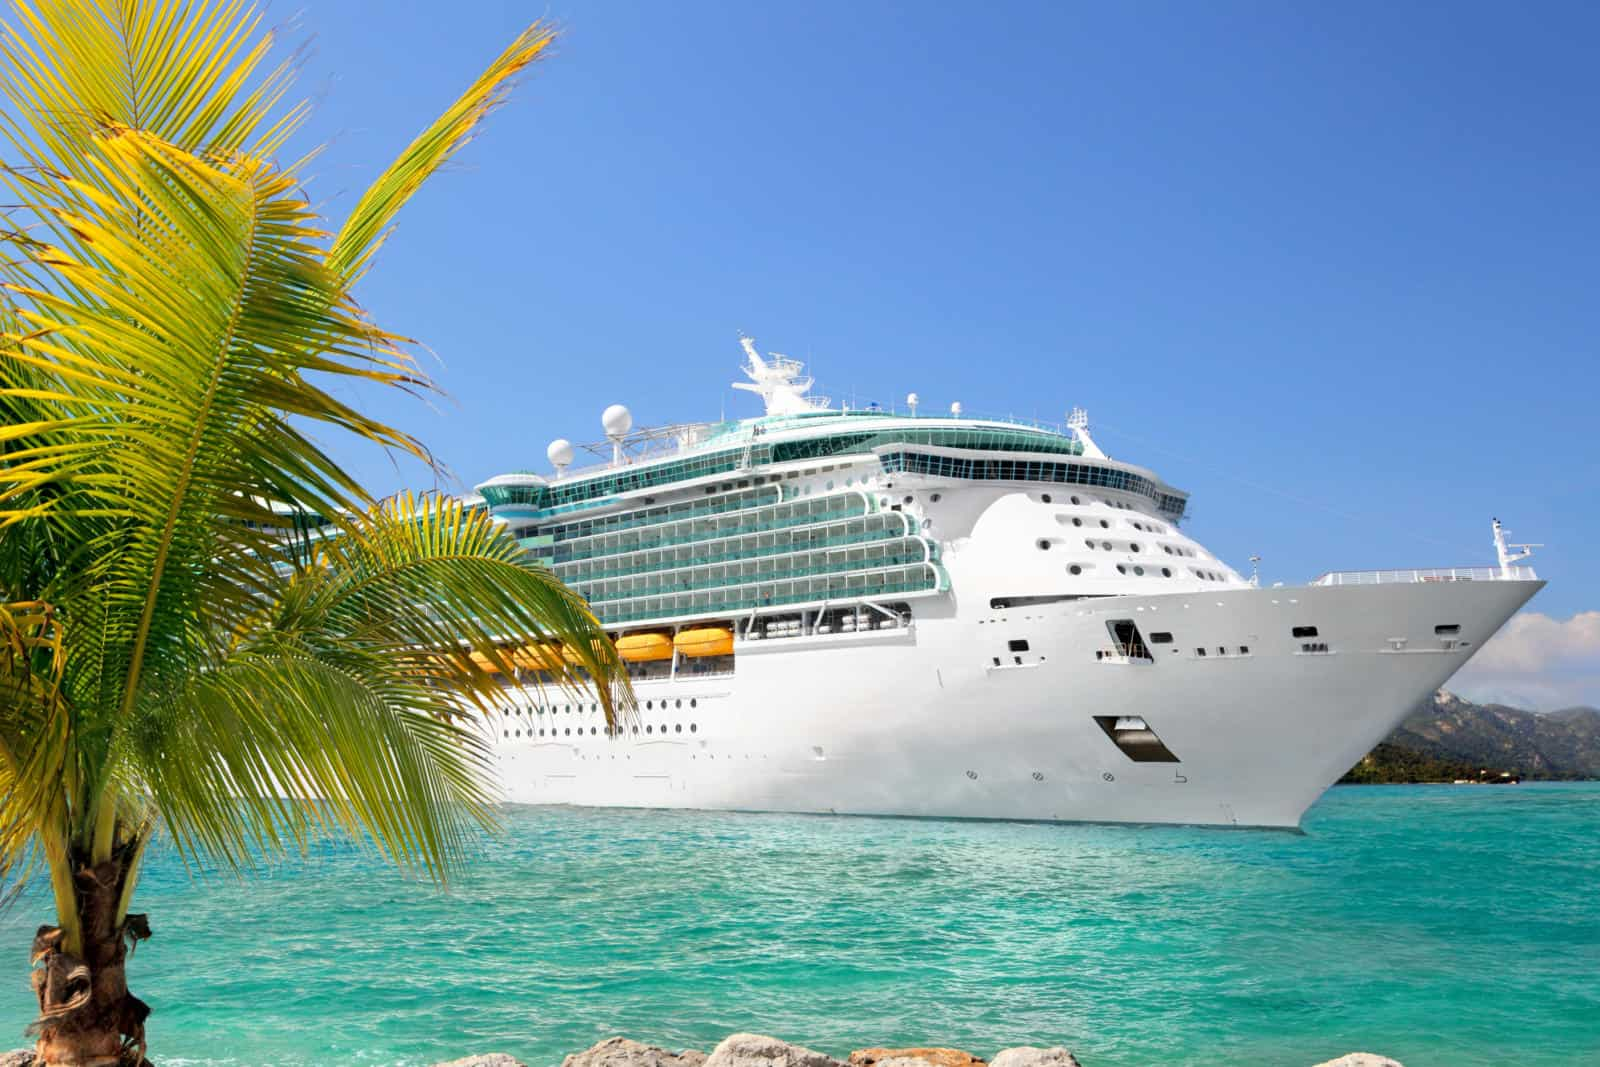 Cruising with a baby - Baby Cruise Packing List